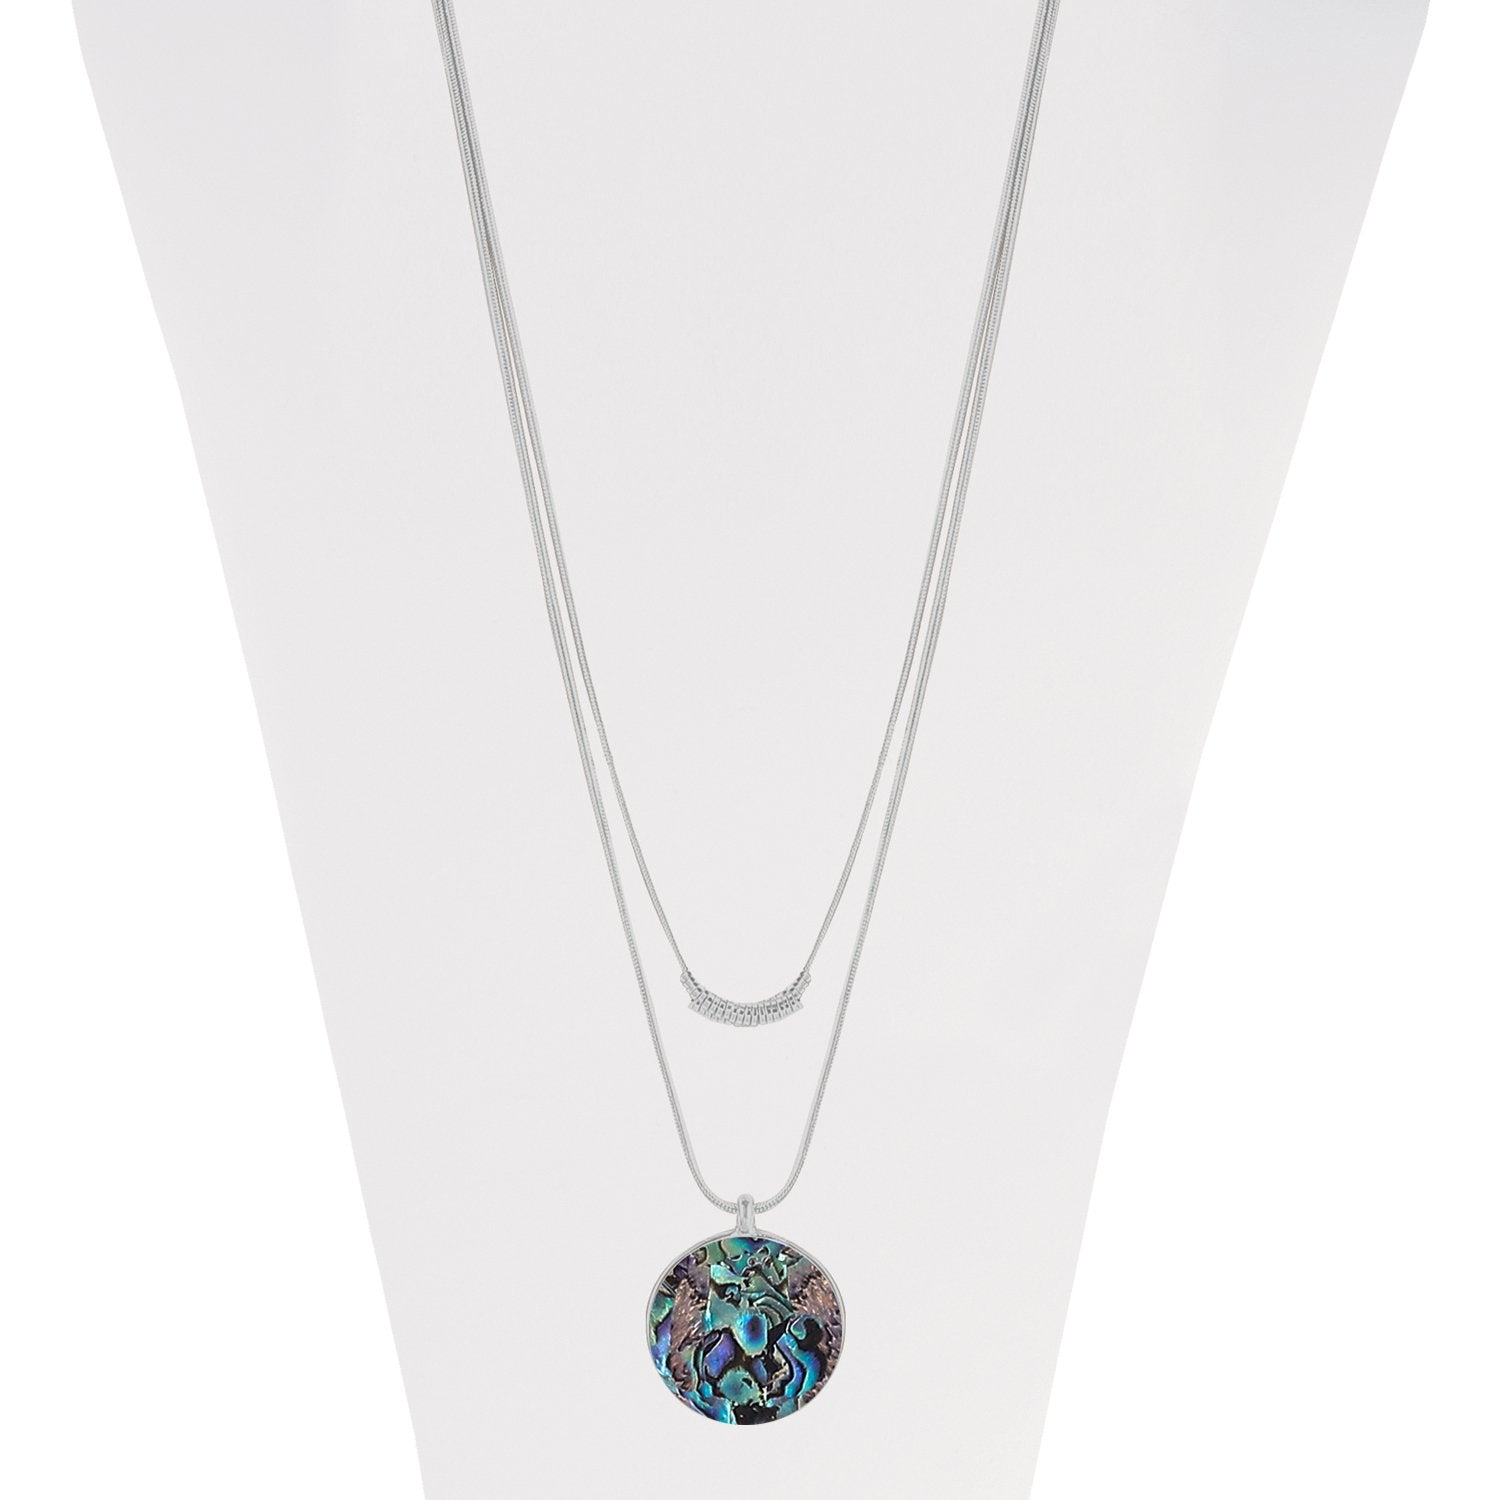 Jackie Abalone Necklace Silver Tone